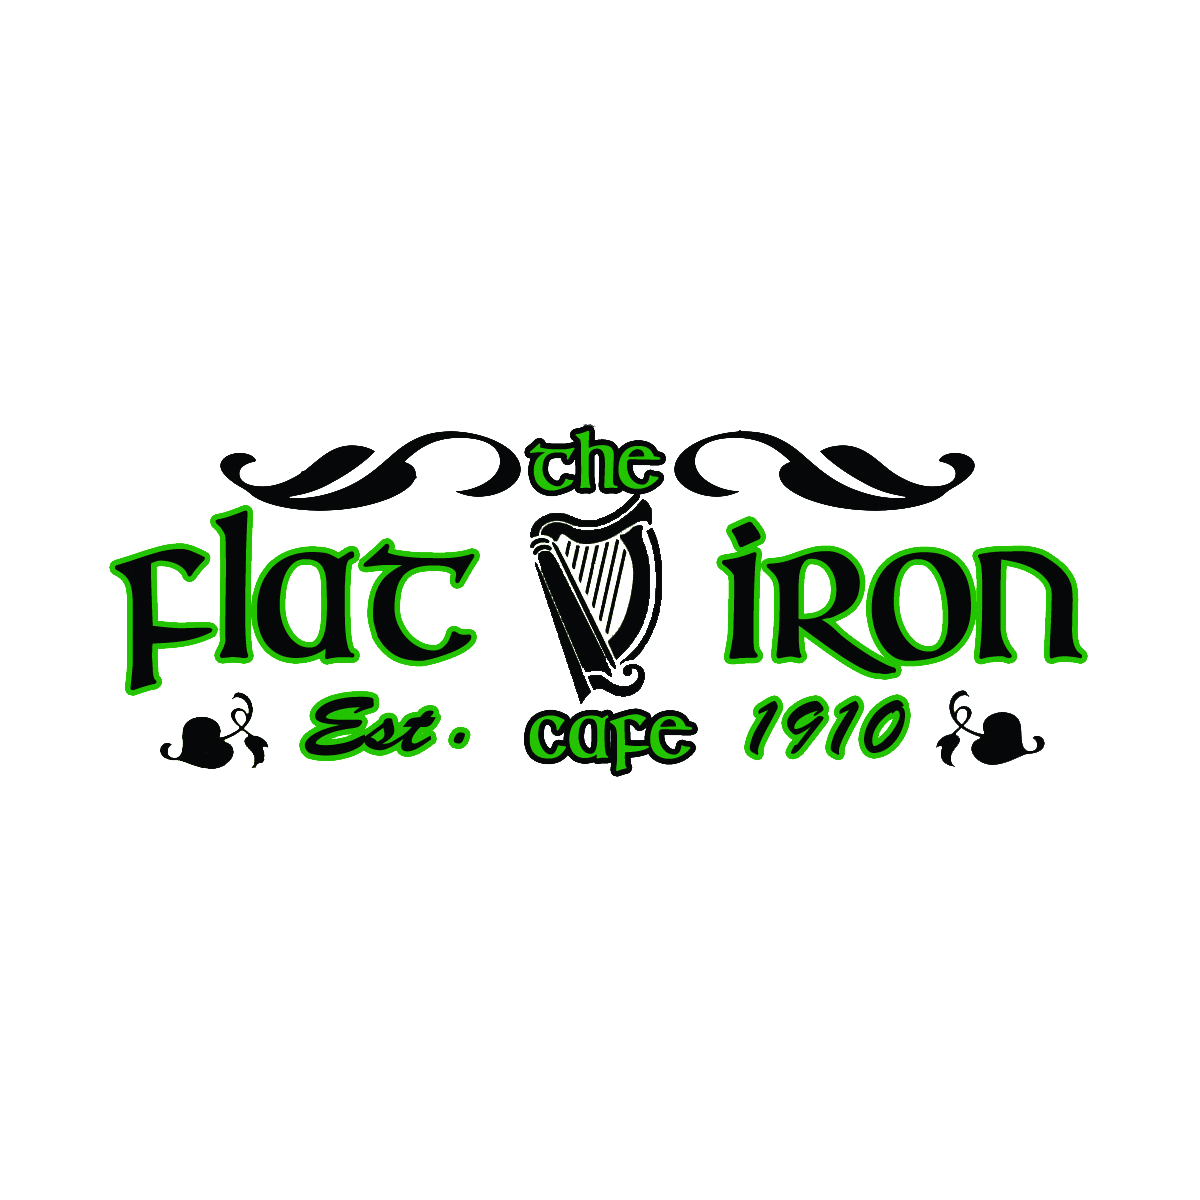 Partner Logo: Flat Iron Cafe